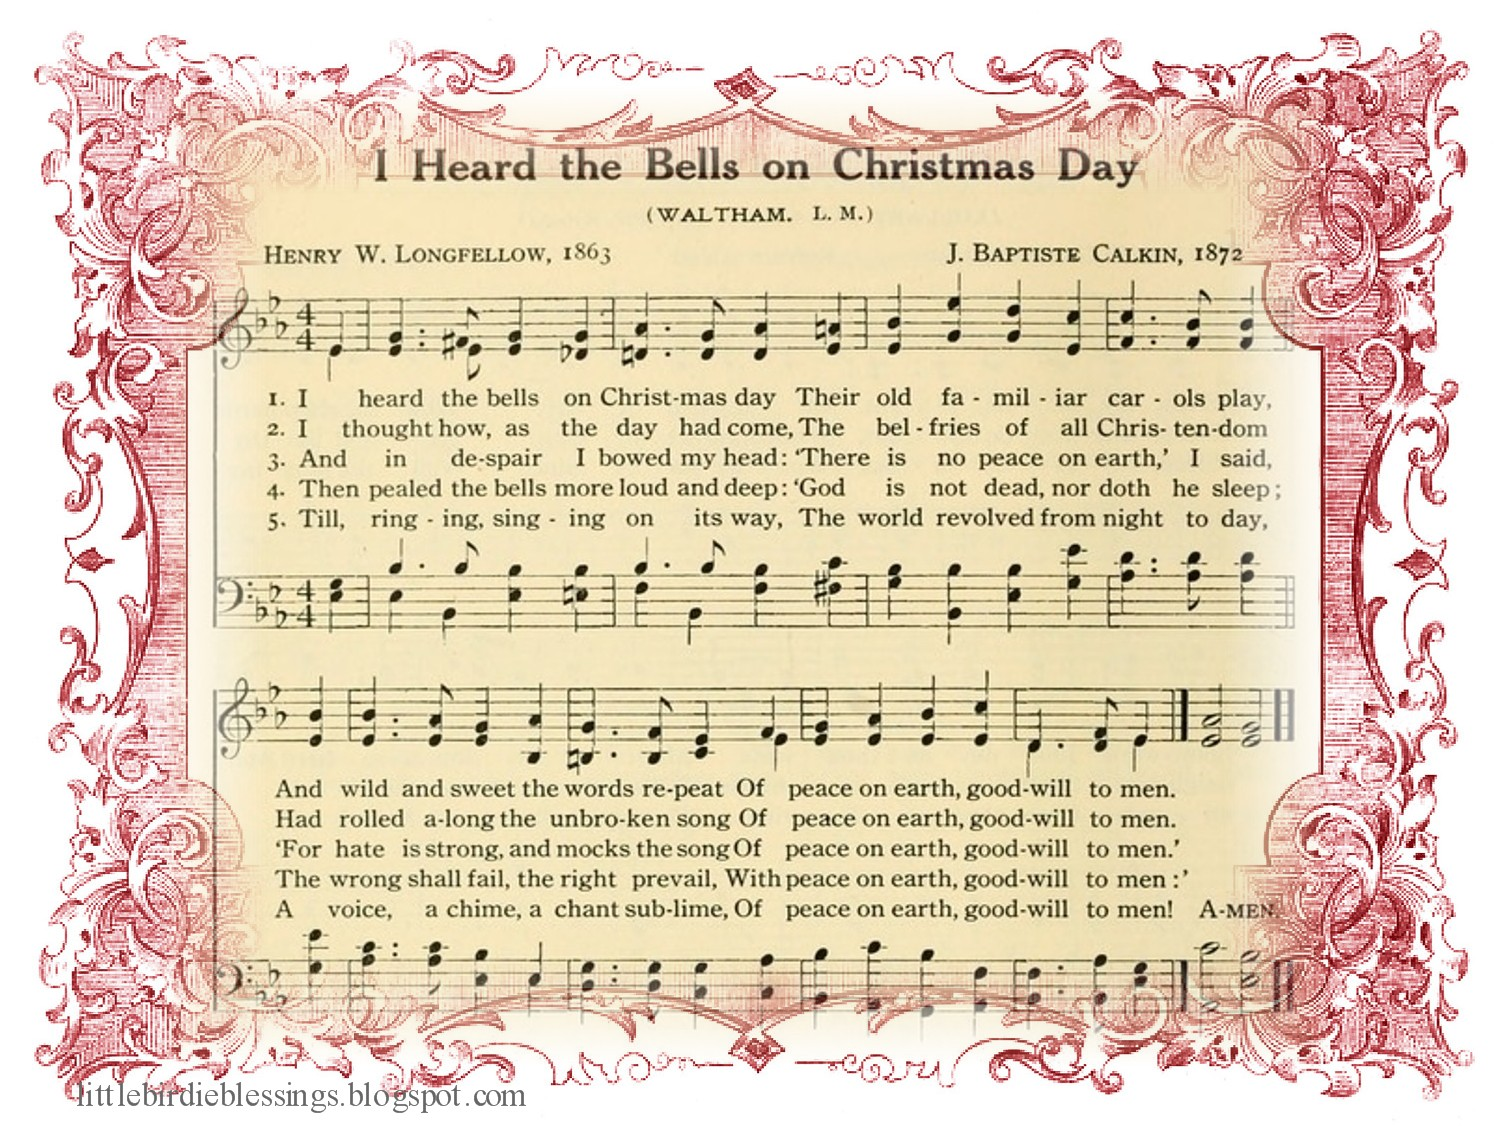 i heard the bells on christmas day their old familiar carols play and wild and sweet the words repeat of peace on earth good will to men - Casting Crowns I Heard The Bells On Christmas Day